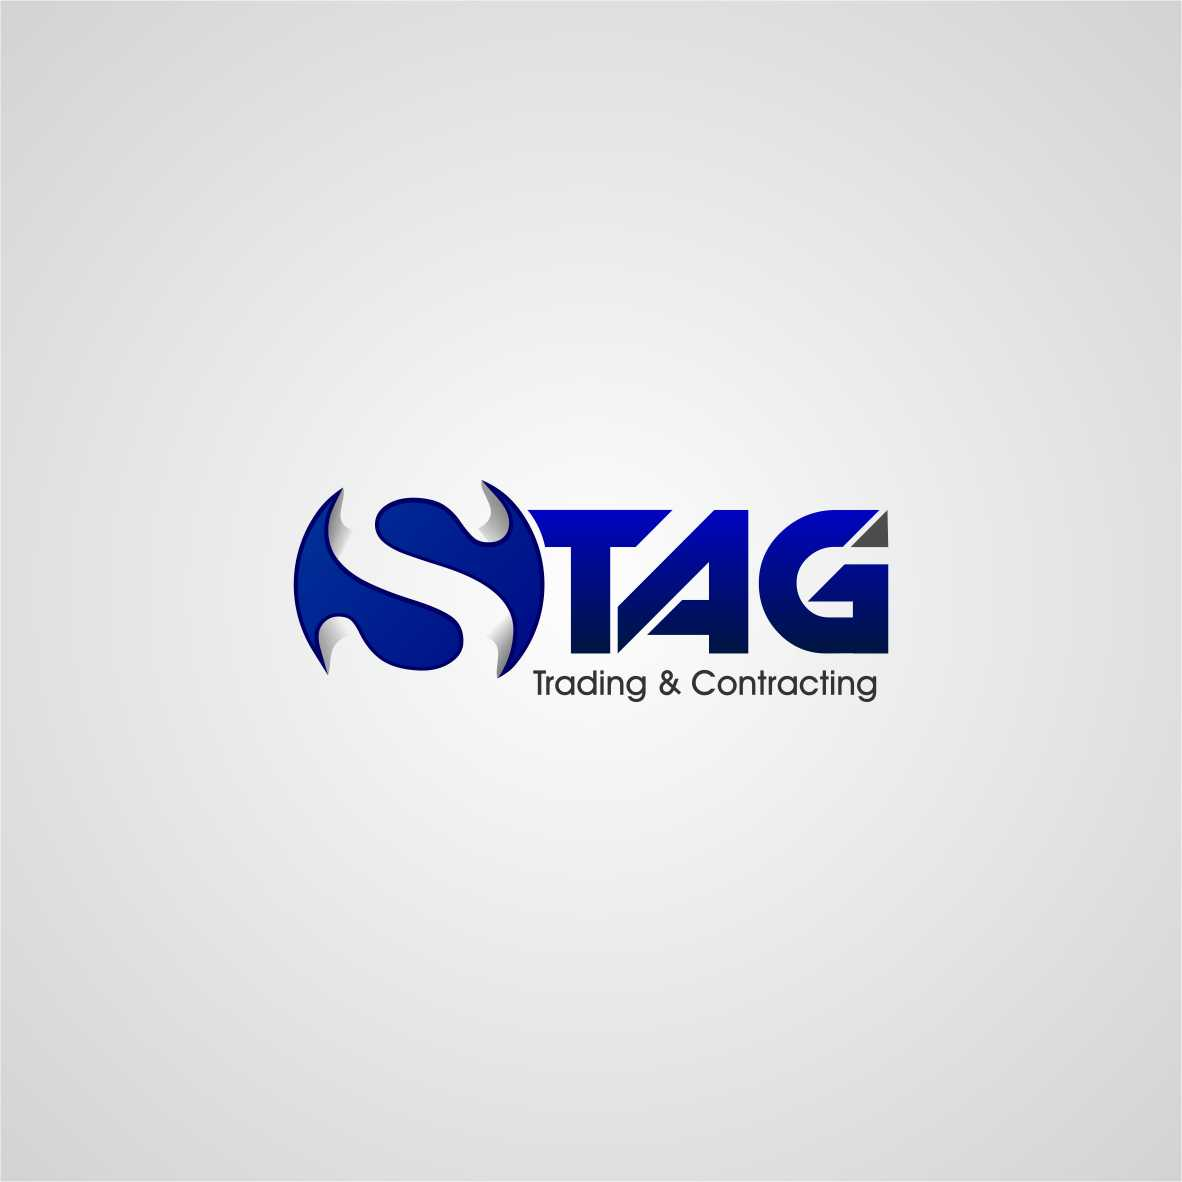 Logo Design by arteo_design - Entry No. 251 in the Logo Design Contest Captivating Logo Design for STAG Trading & Contracting.